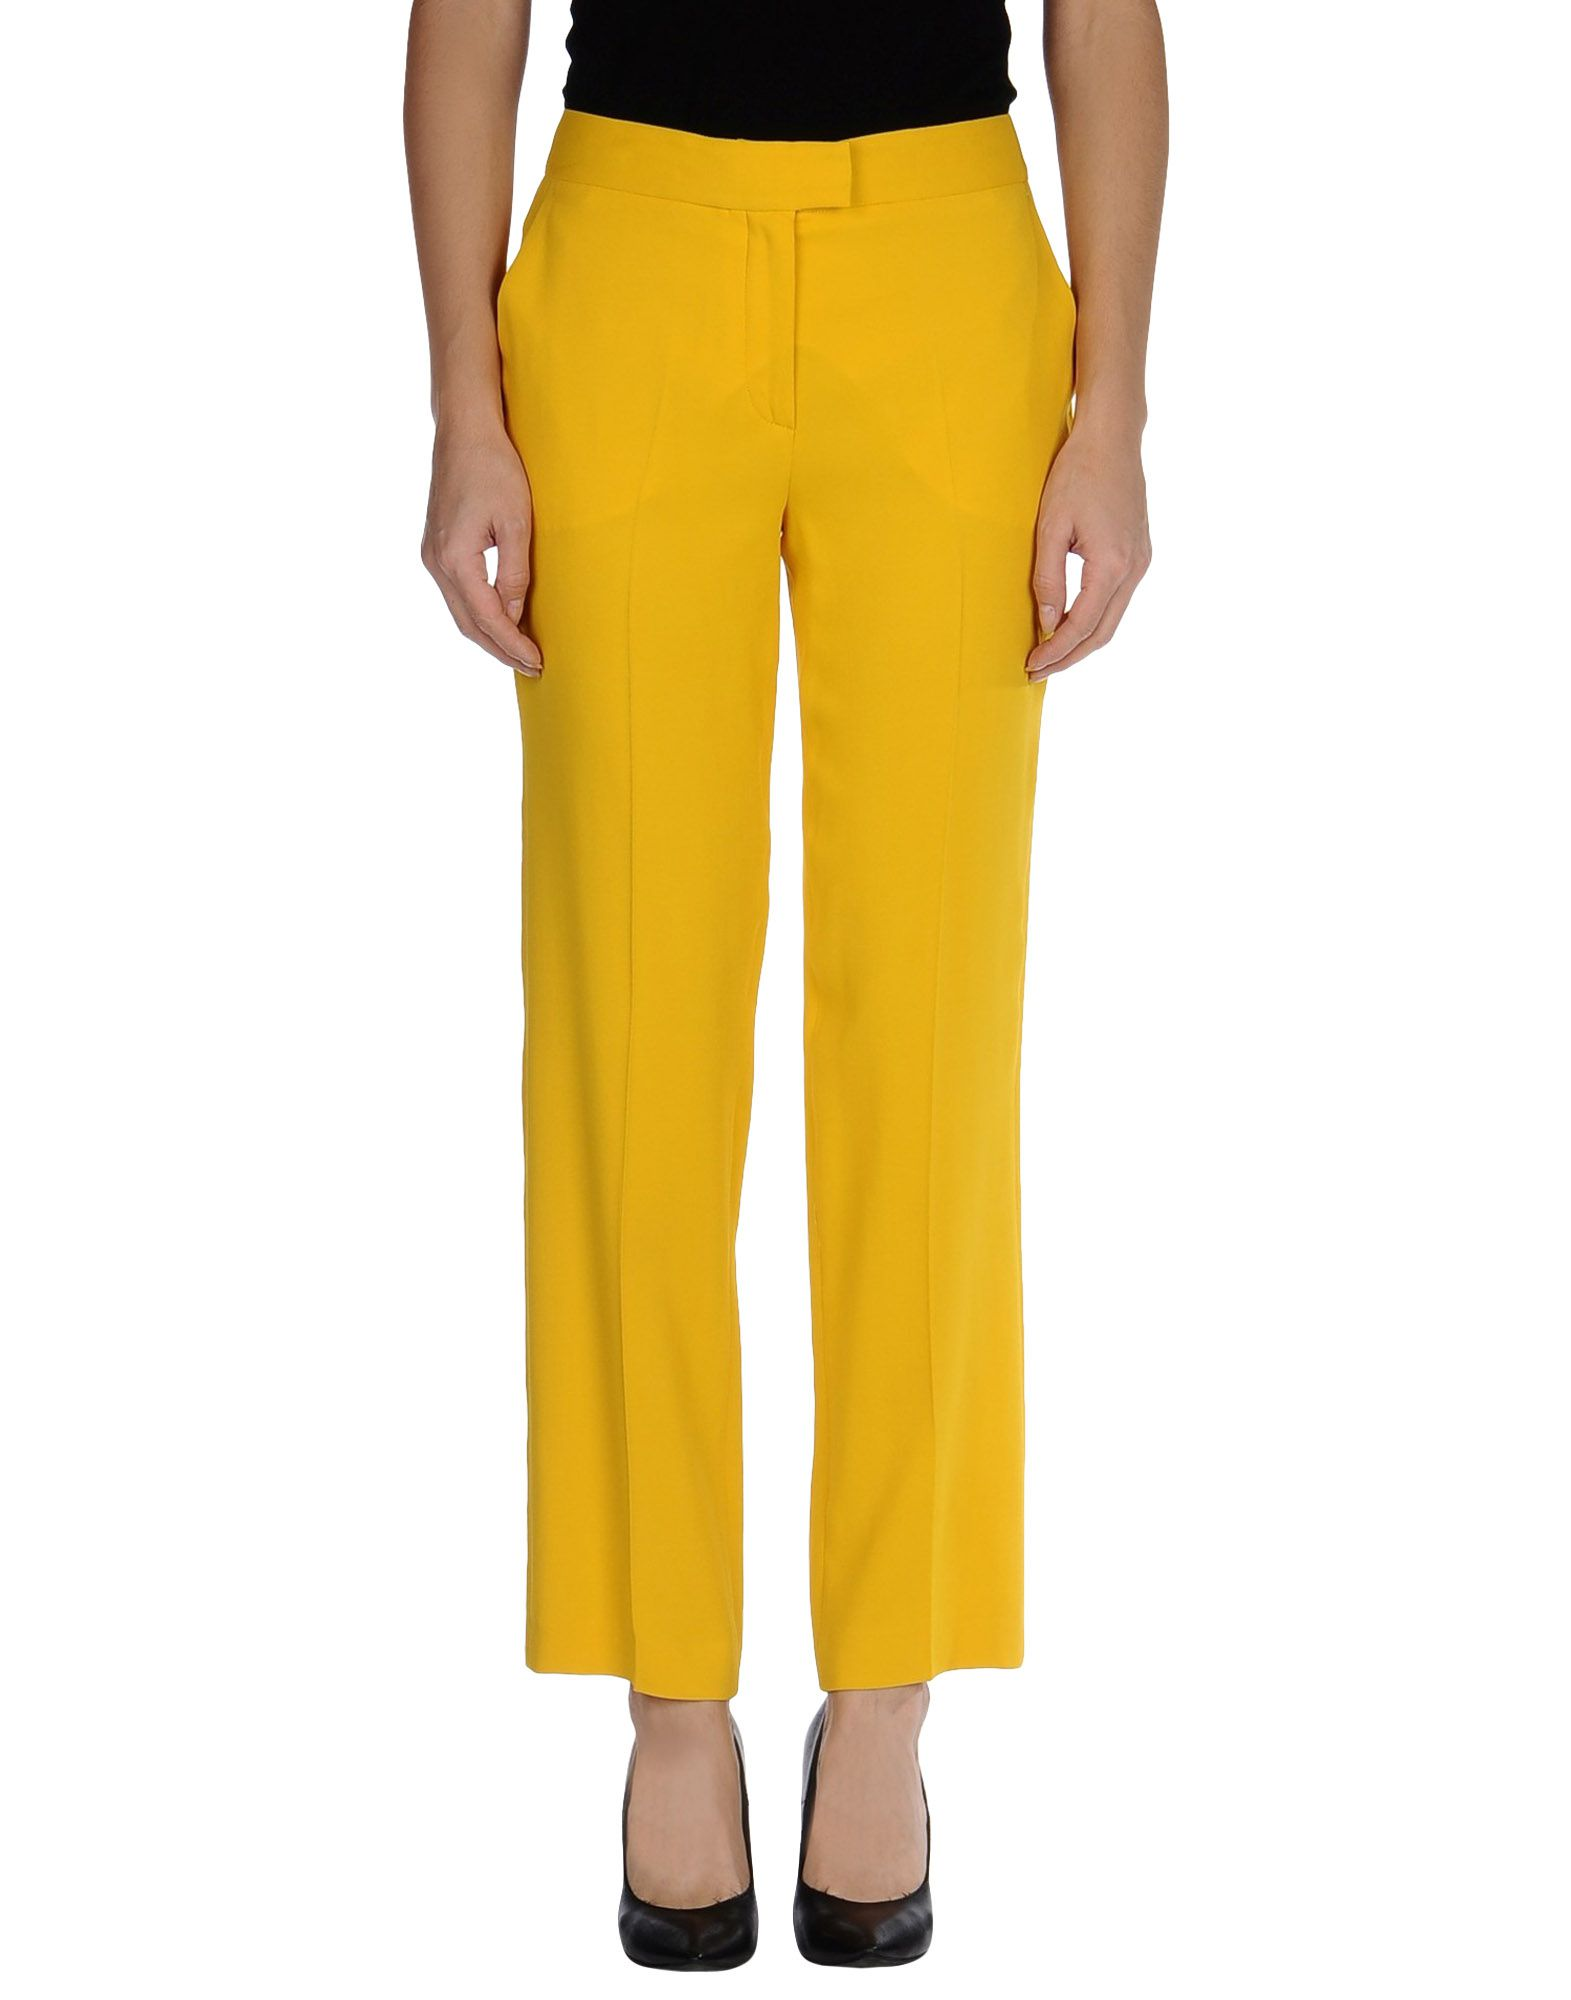 Original Womens Yellow Casual Summer Pants Ladies Slim Fit Jeans Style Trousers